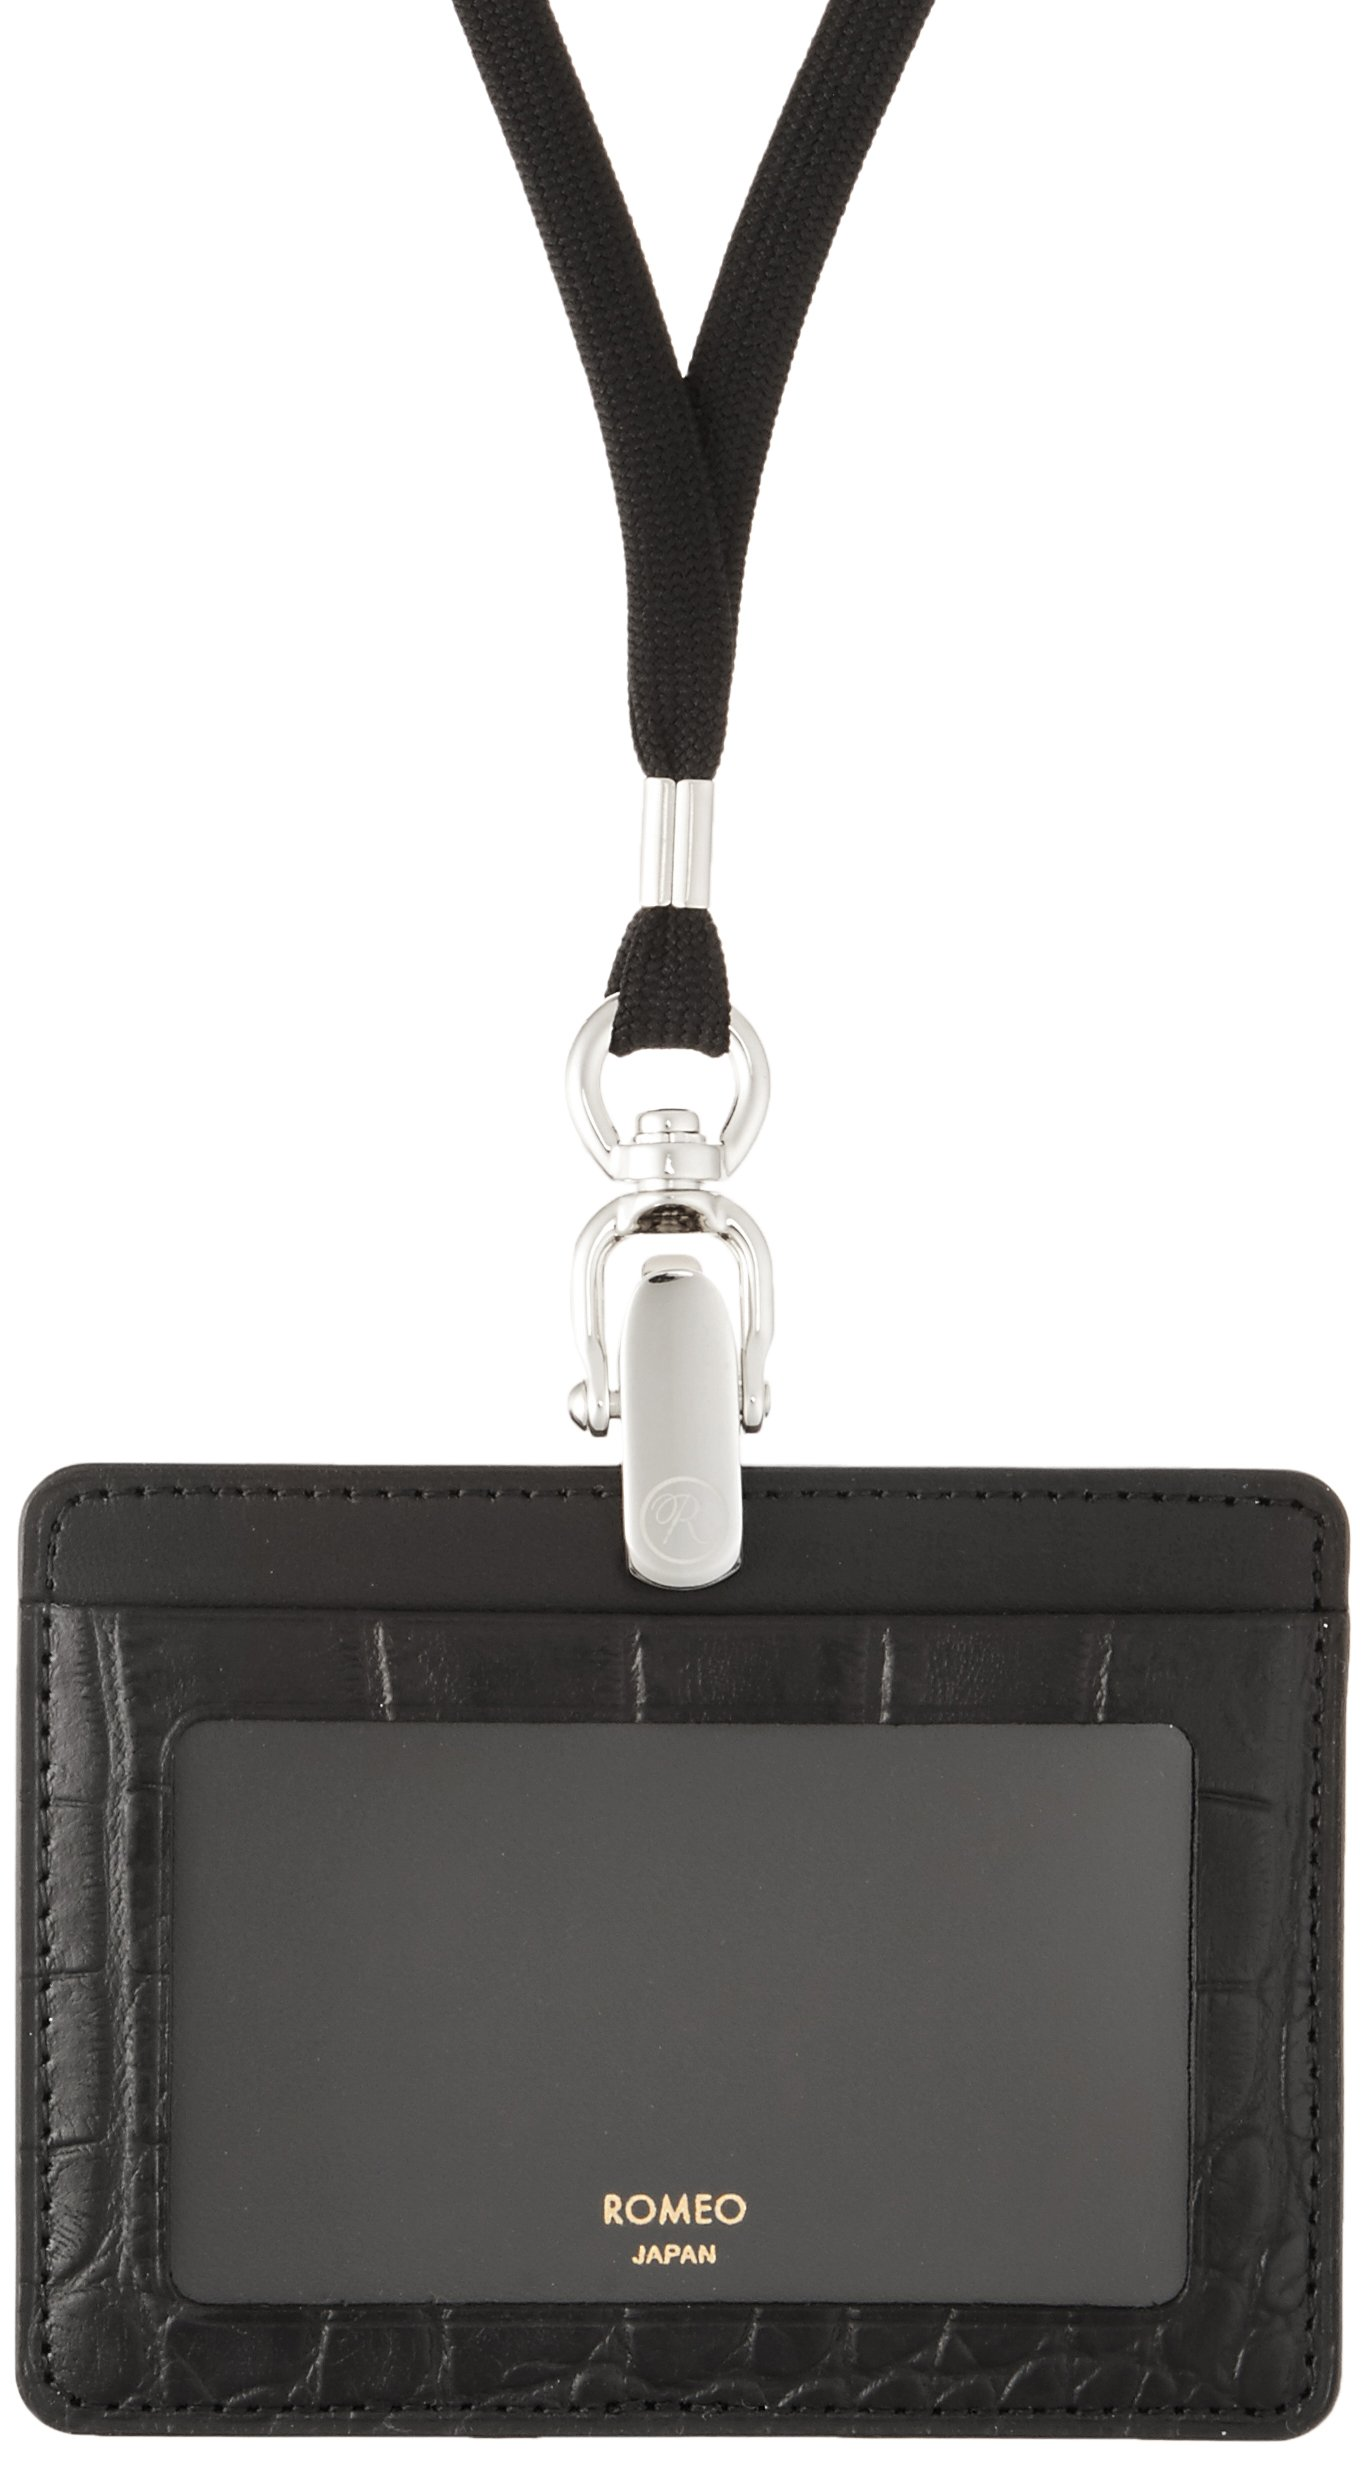 ITOYA Romeo Id Case With Jotter L / Crocodile Embossed Leather